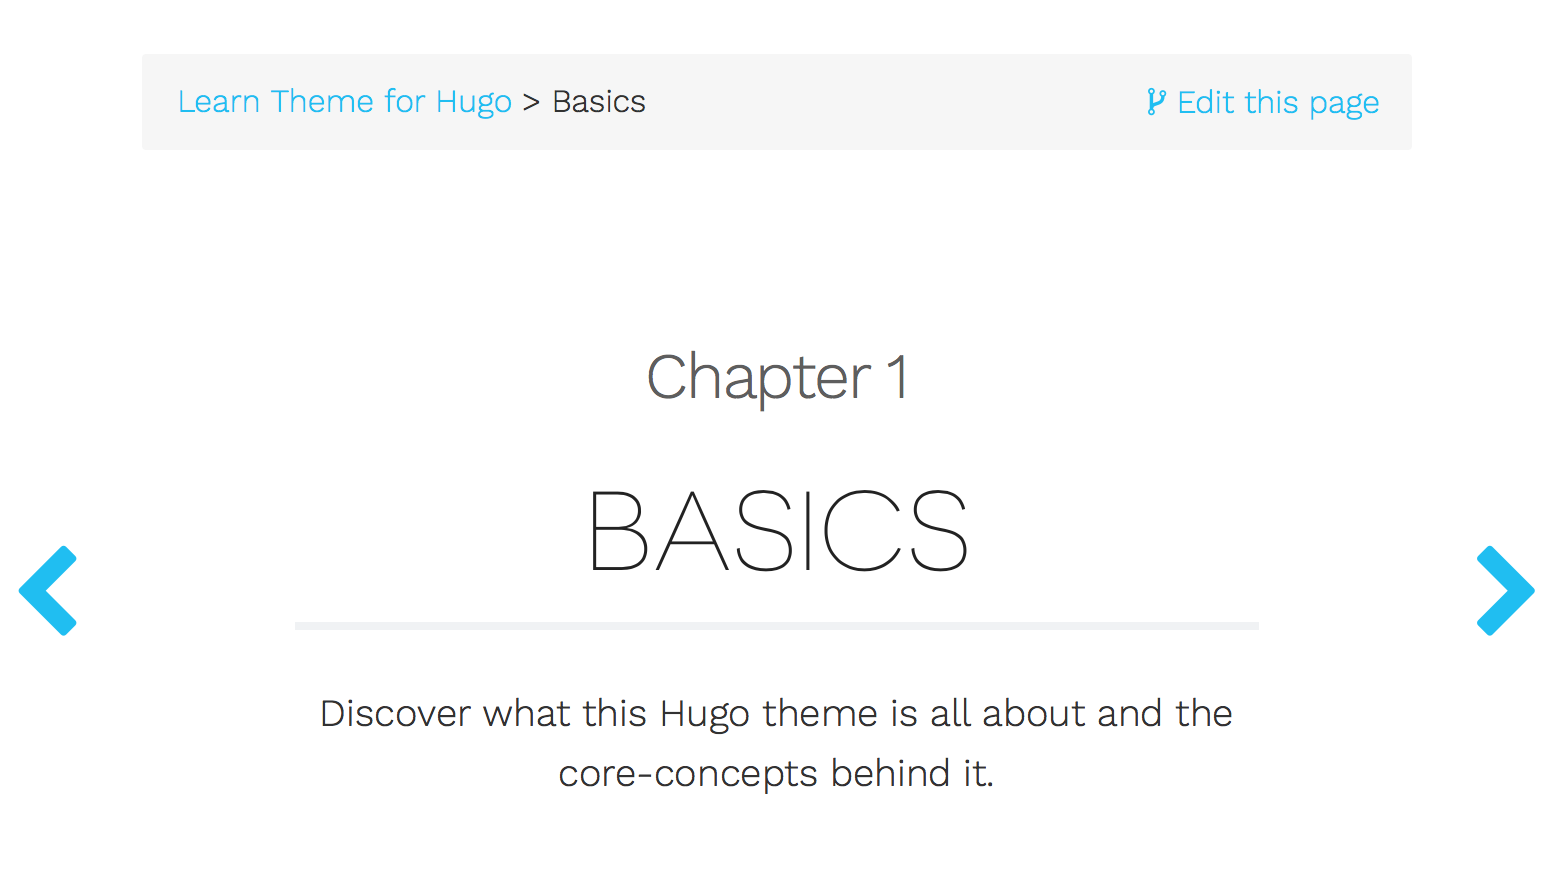 content/basics/installation/images/chapter.png